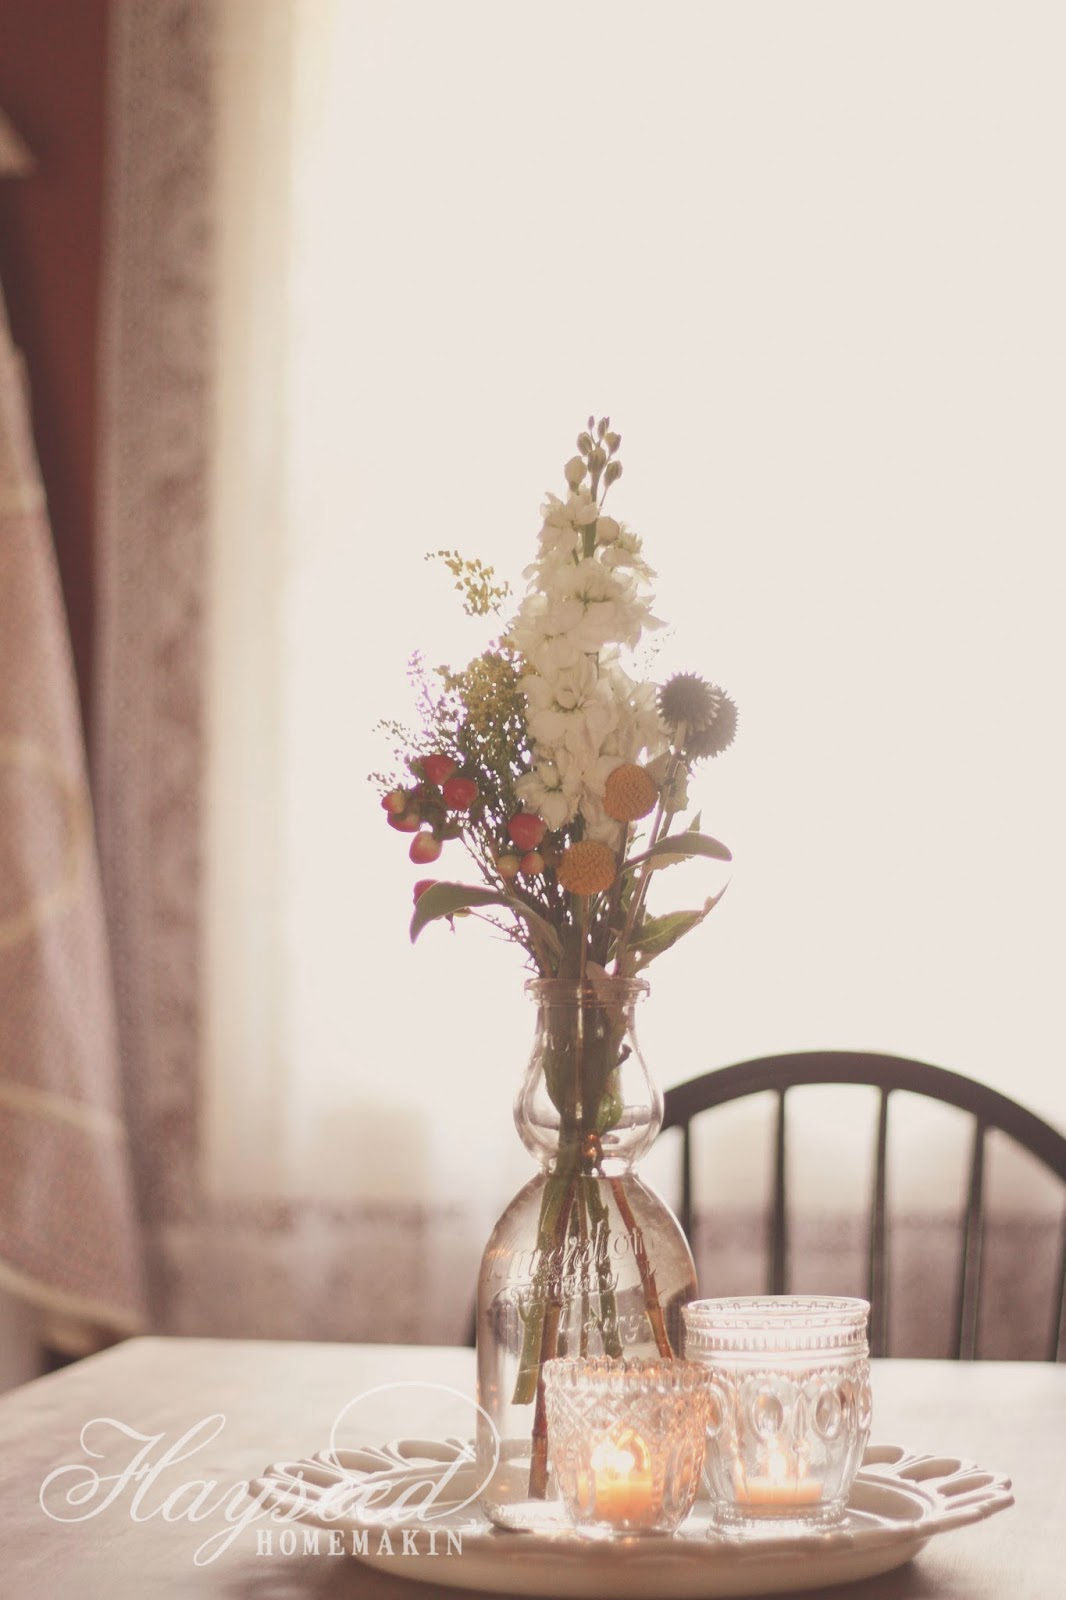 Hayseed homemakin milk bottle centerpiece